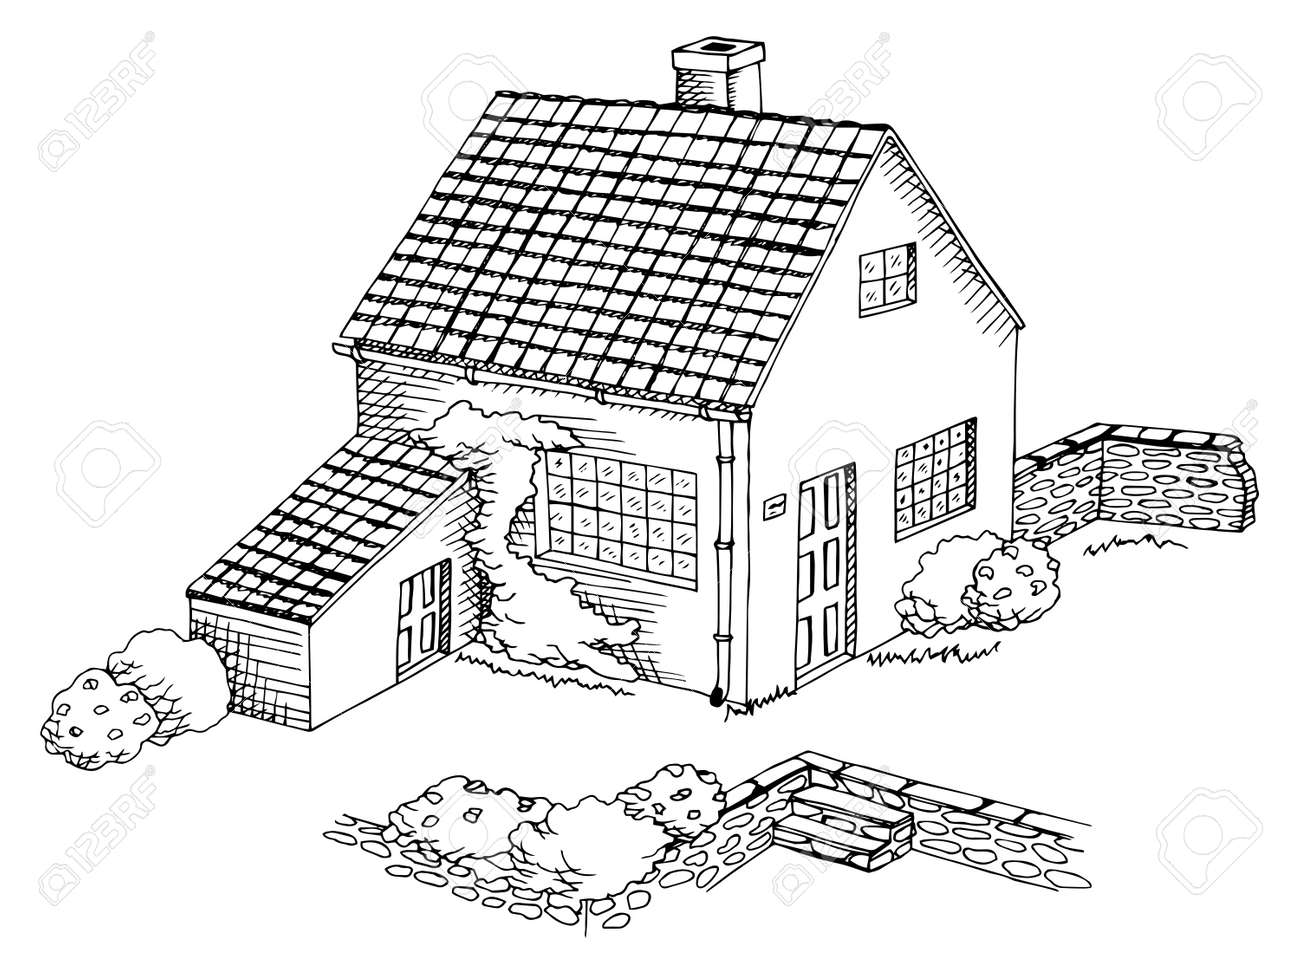 Village House Graphic Art Black White Landscape Illustration